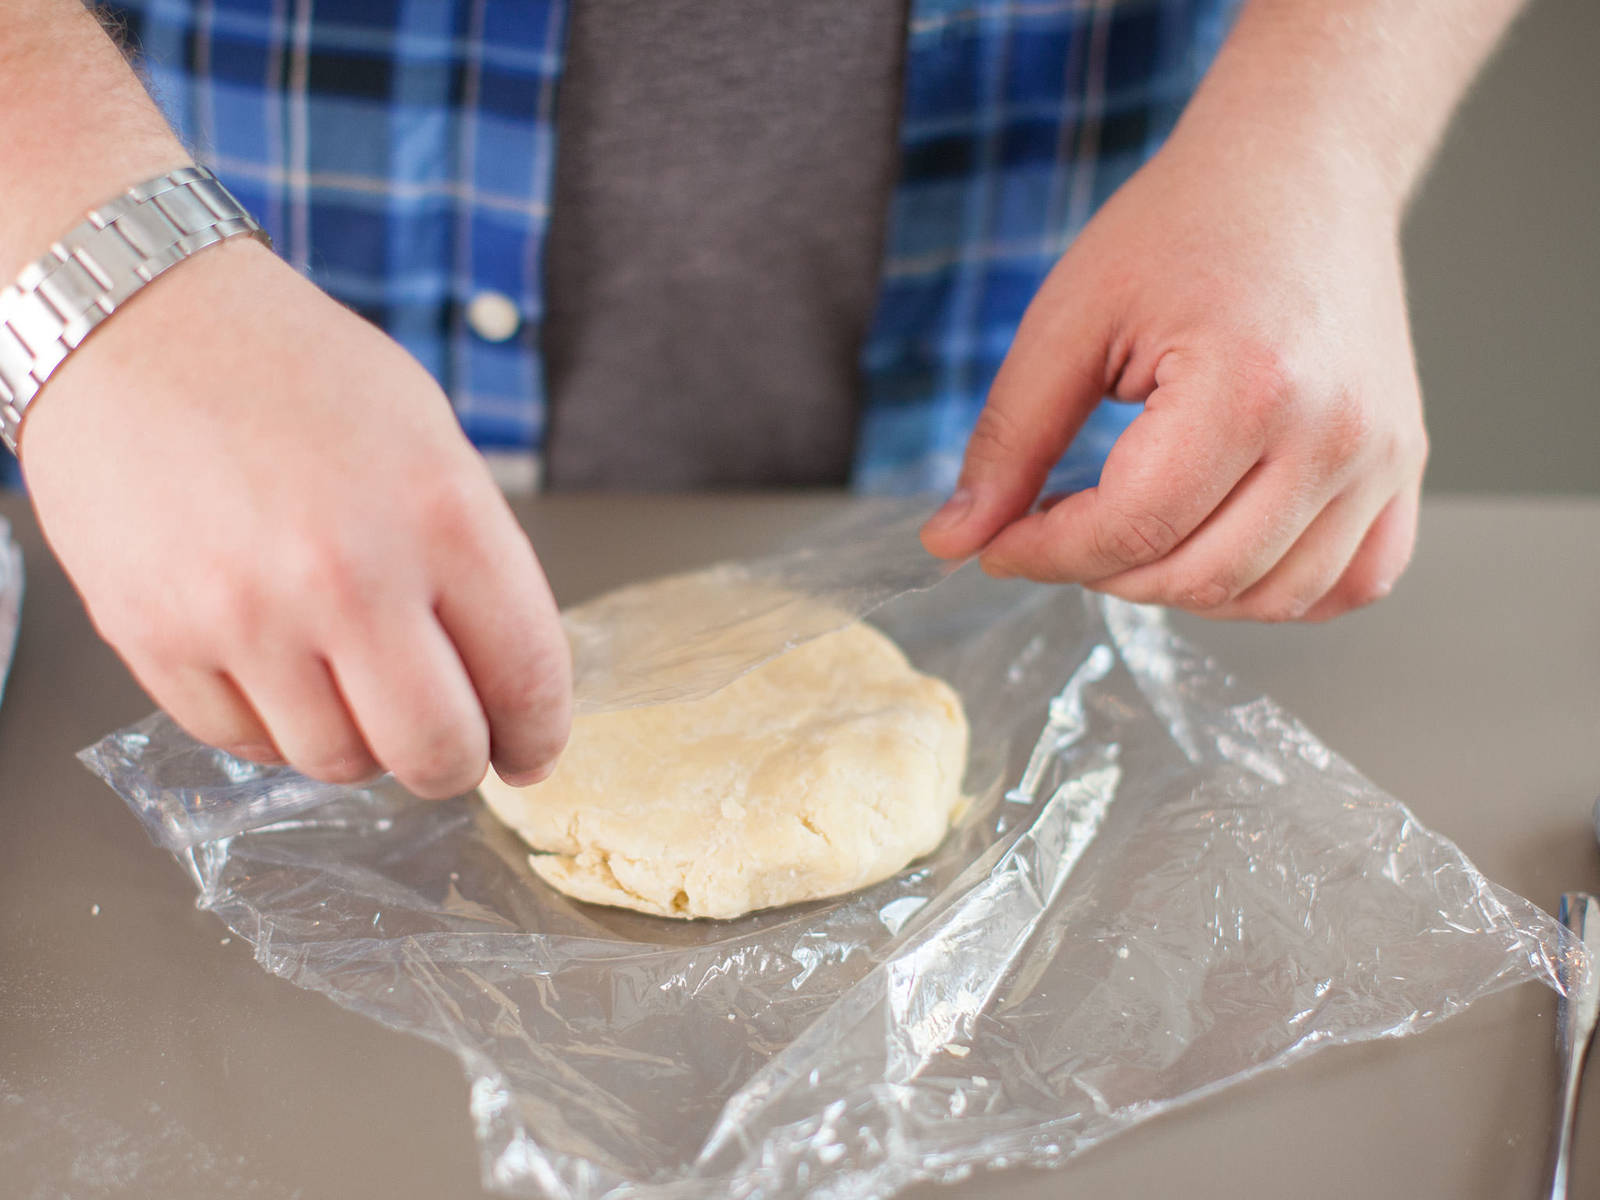 Sift flour and a pinch of salt into a large bowl. Add butter in small pieces. Working quickly, combine the dough into coarse crumbs. Add cold water and form into a ball. Wrap in plastic wrap, transfer to refrigerator, and let rest for approx. 30 - 60 min.